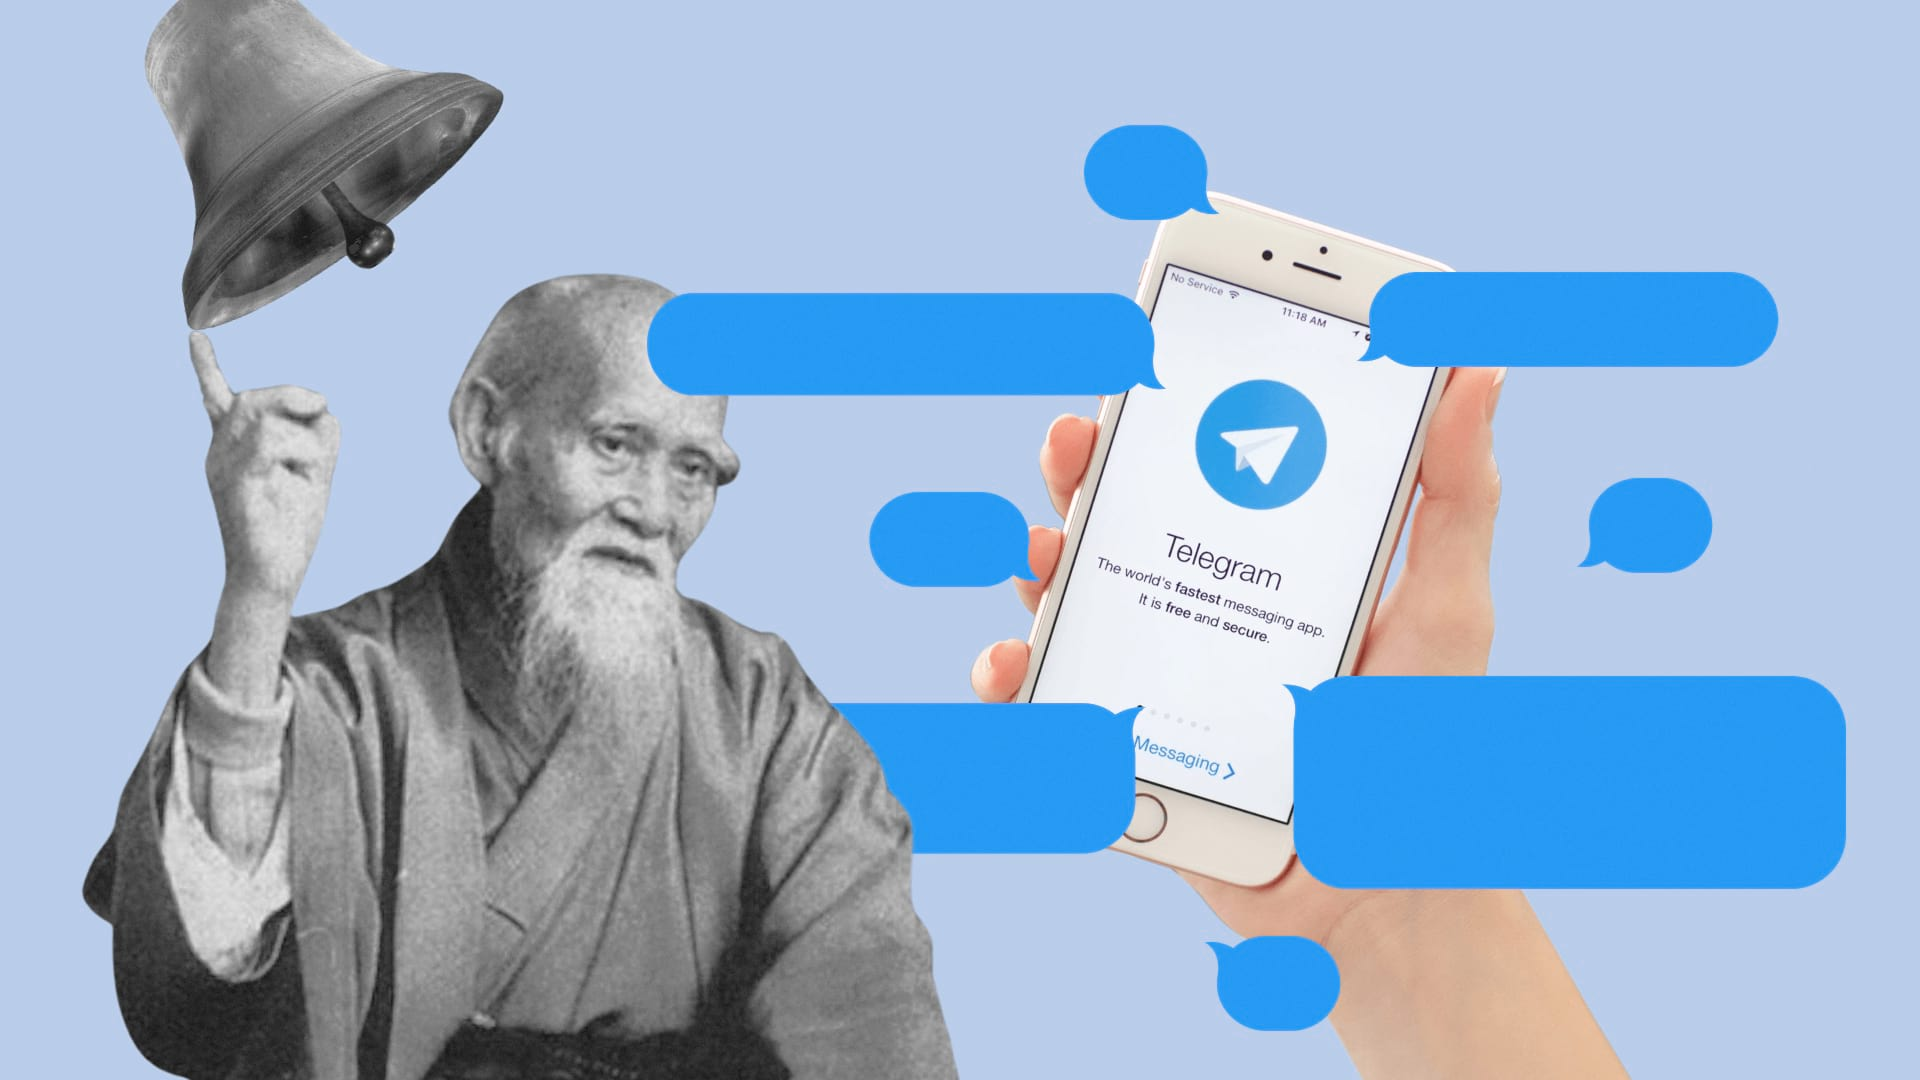 SMM in Telegram: what to consider so as not to mess up the channel